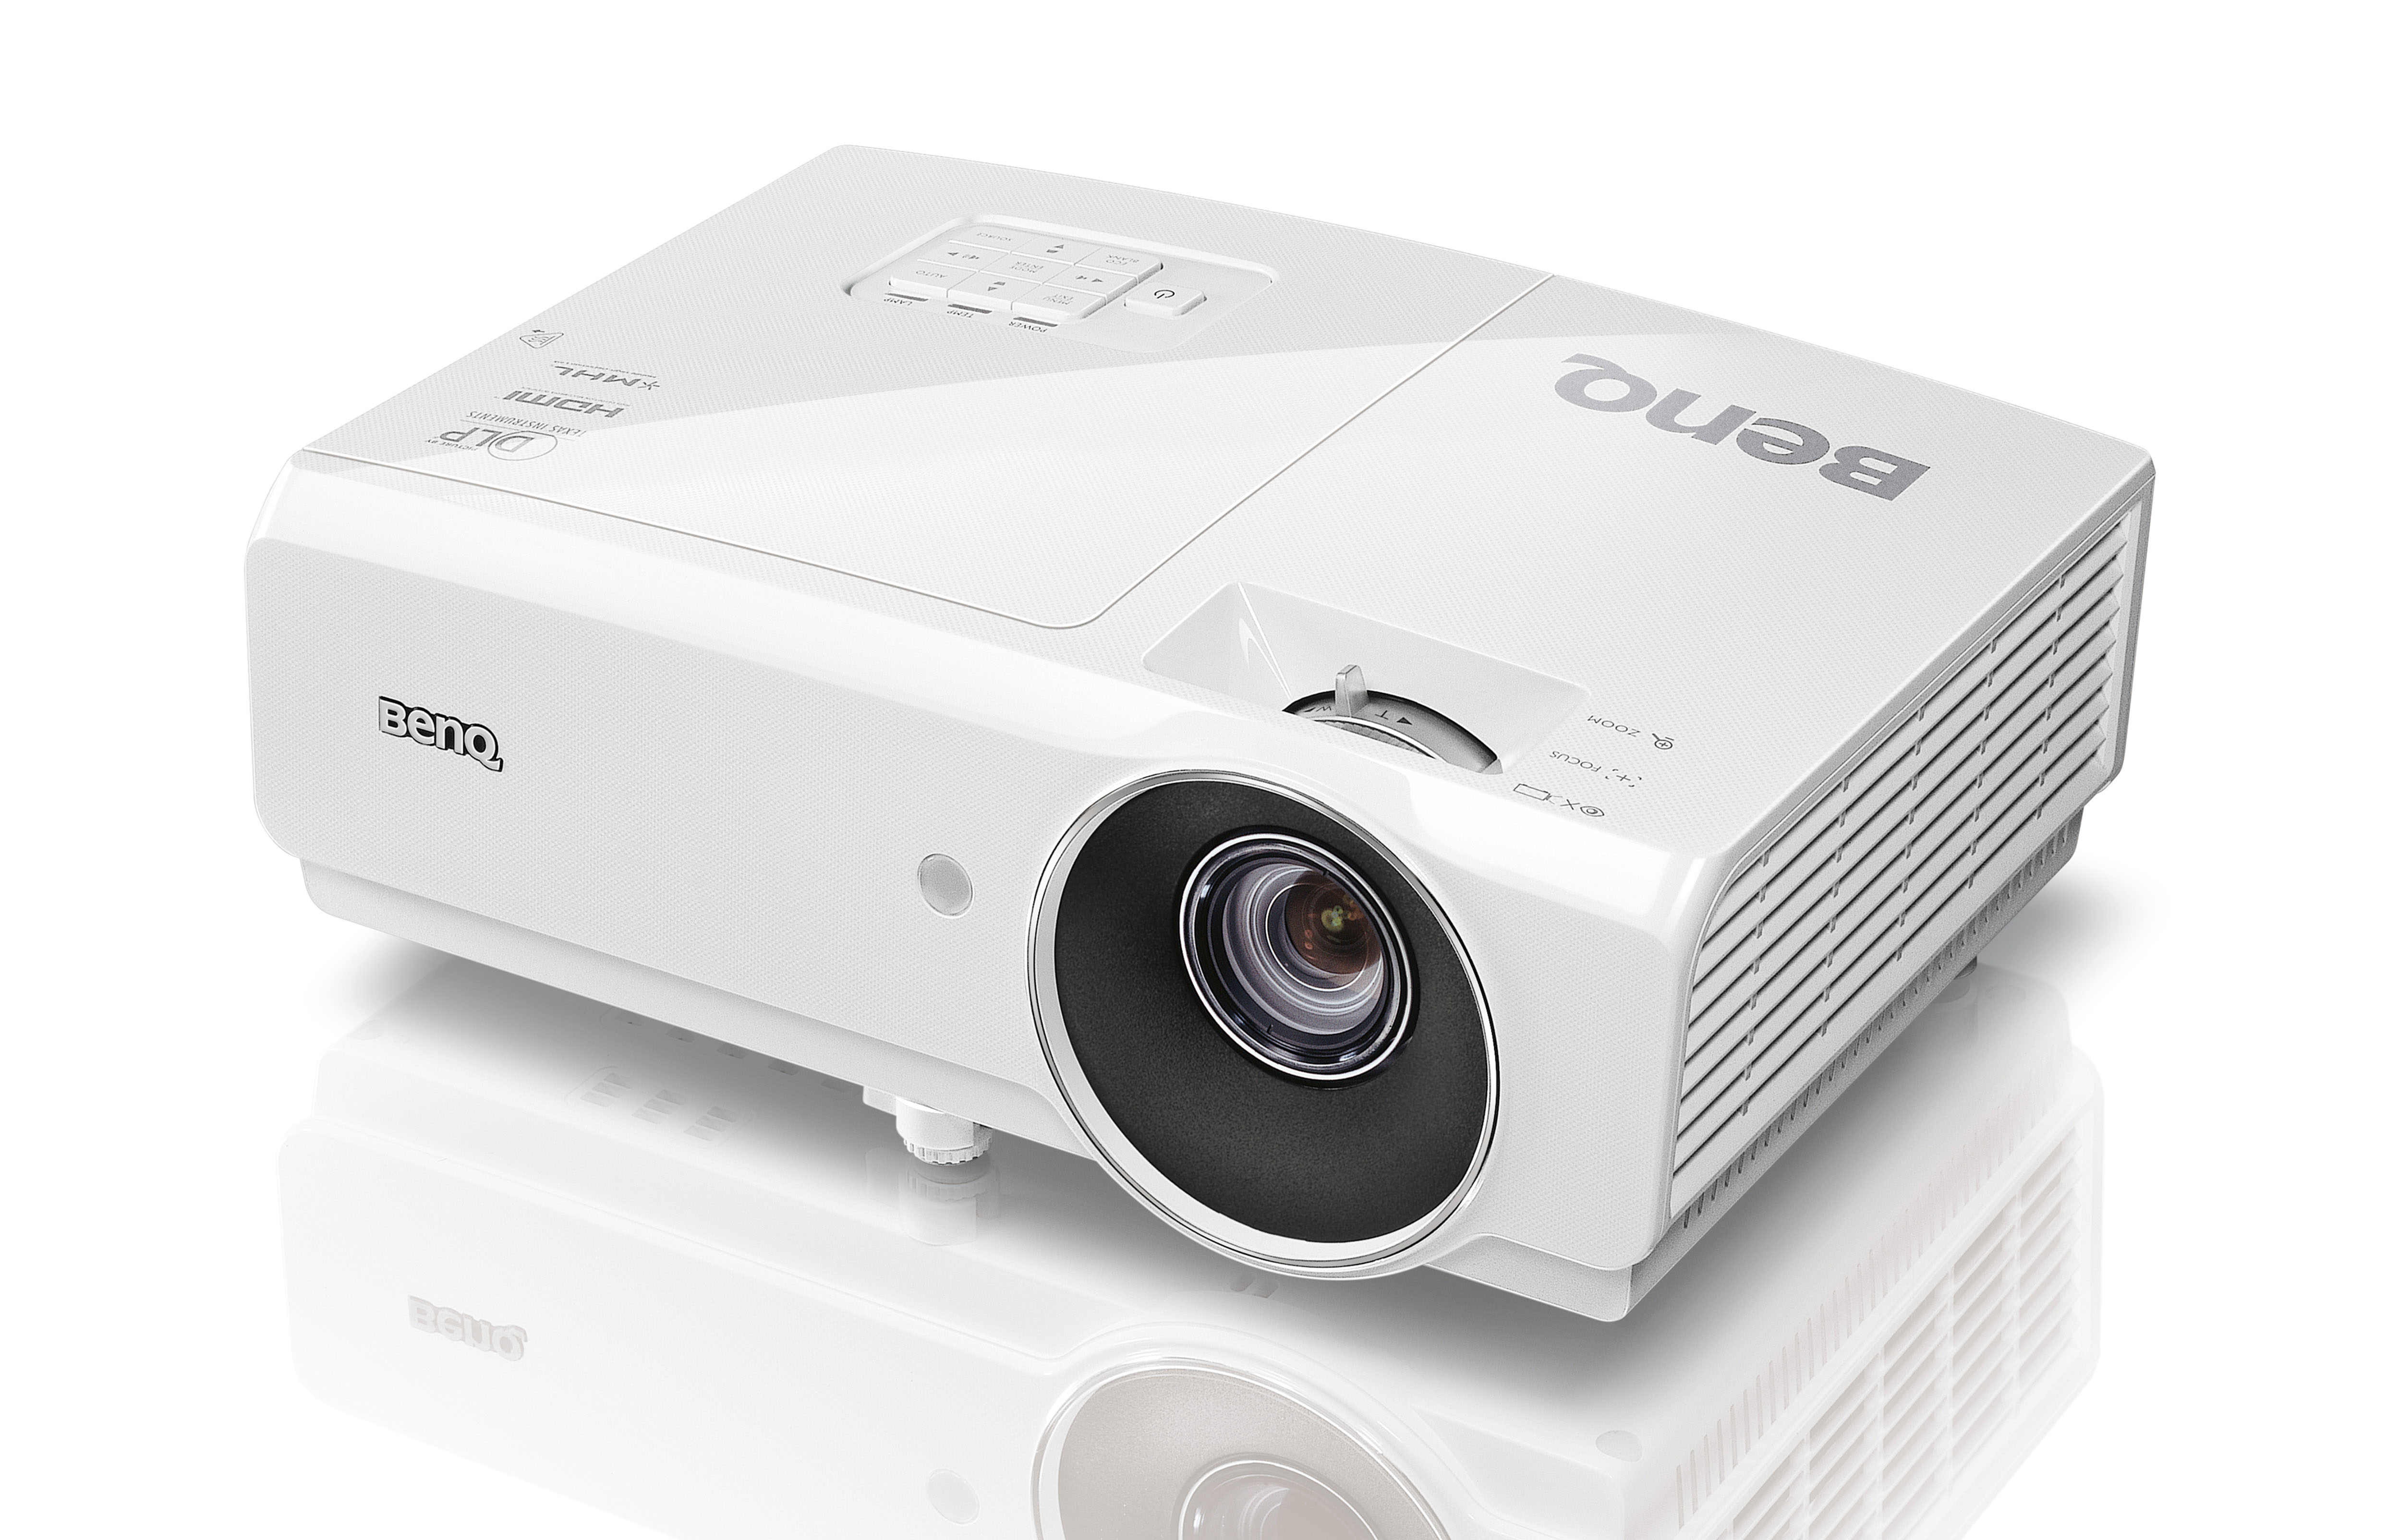 Benq Projector MW727      1280 x 800 Resolution, 4200 ANSI Lumens, 11000:1 Contrast Ratio,  D-Sub, HDMI x2, S-Video, RCA Inputs, Remote Control, Carry Bag